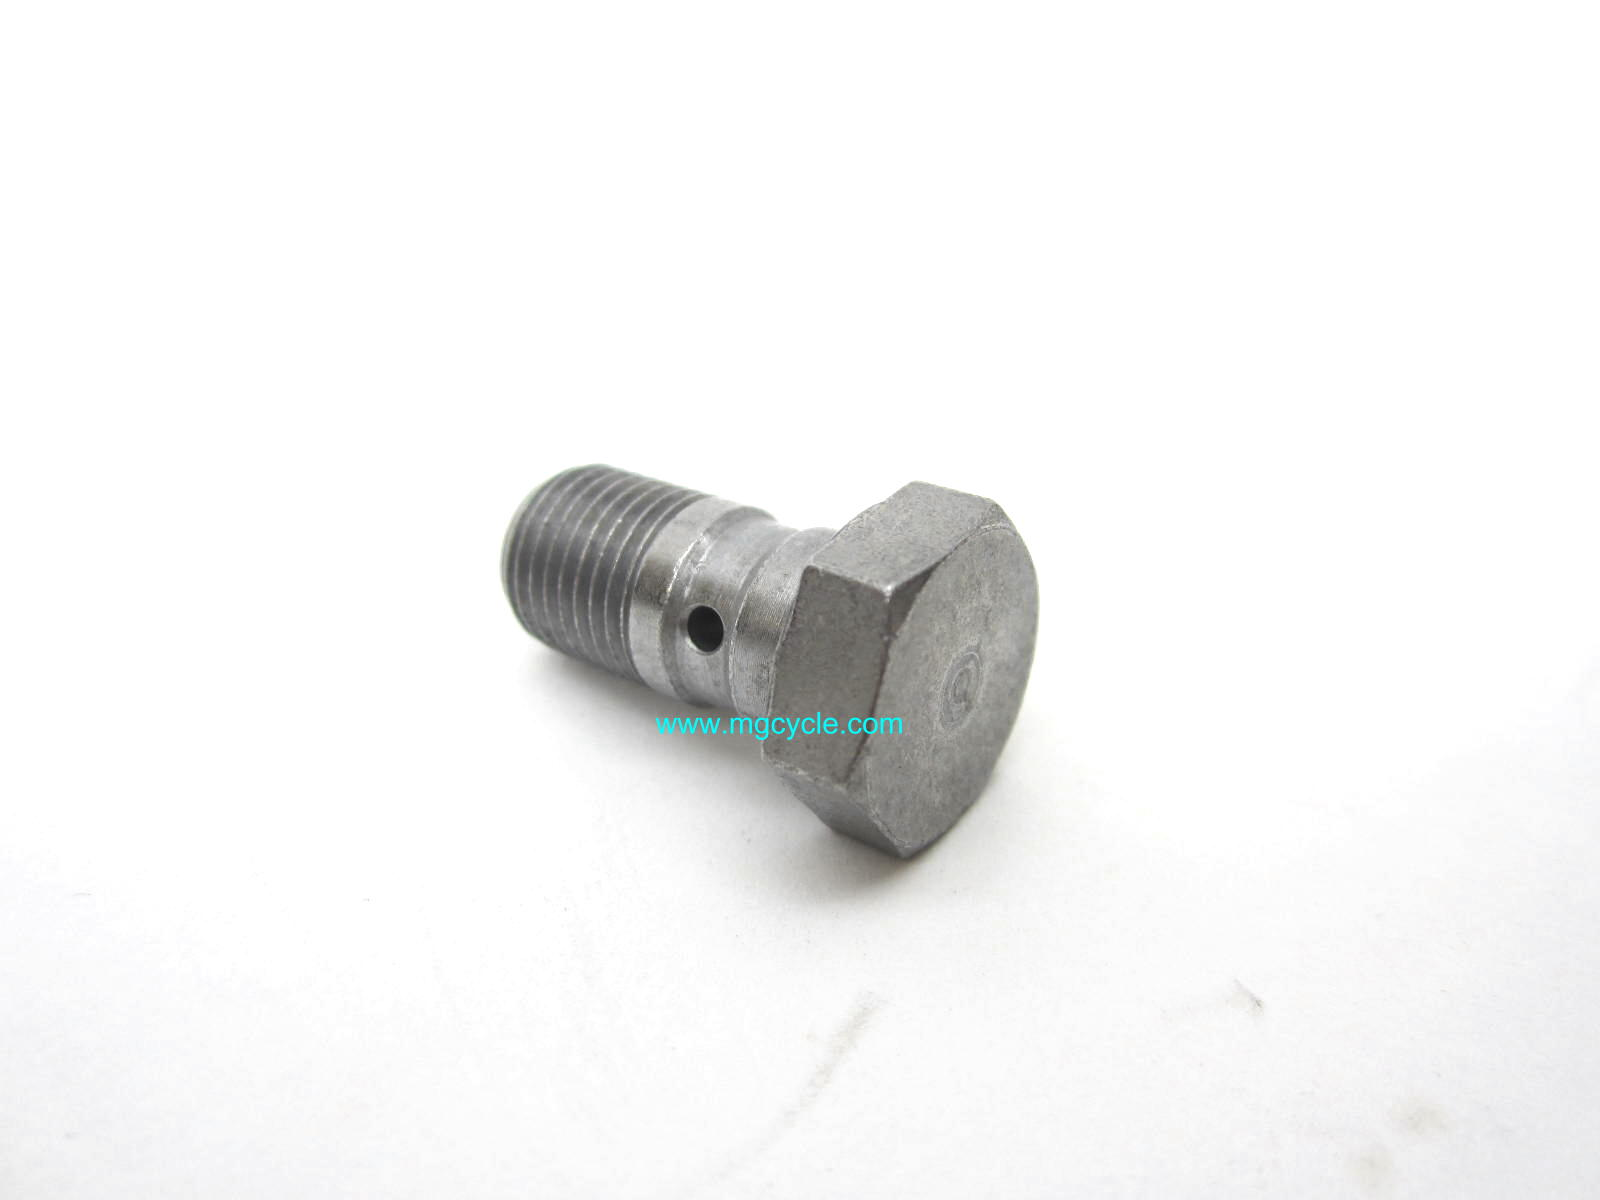 Brembo steel banjo bolt 10mm x 1.00 pitch